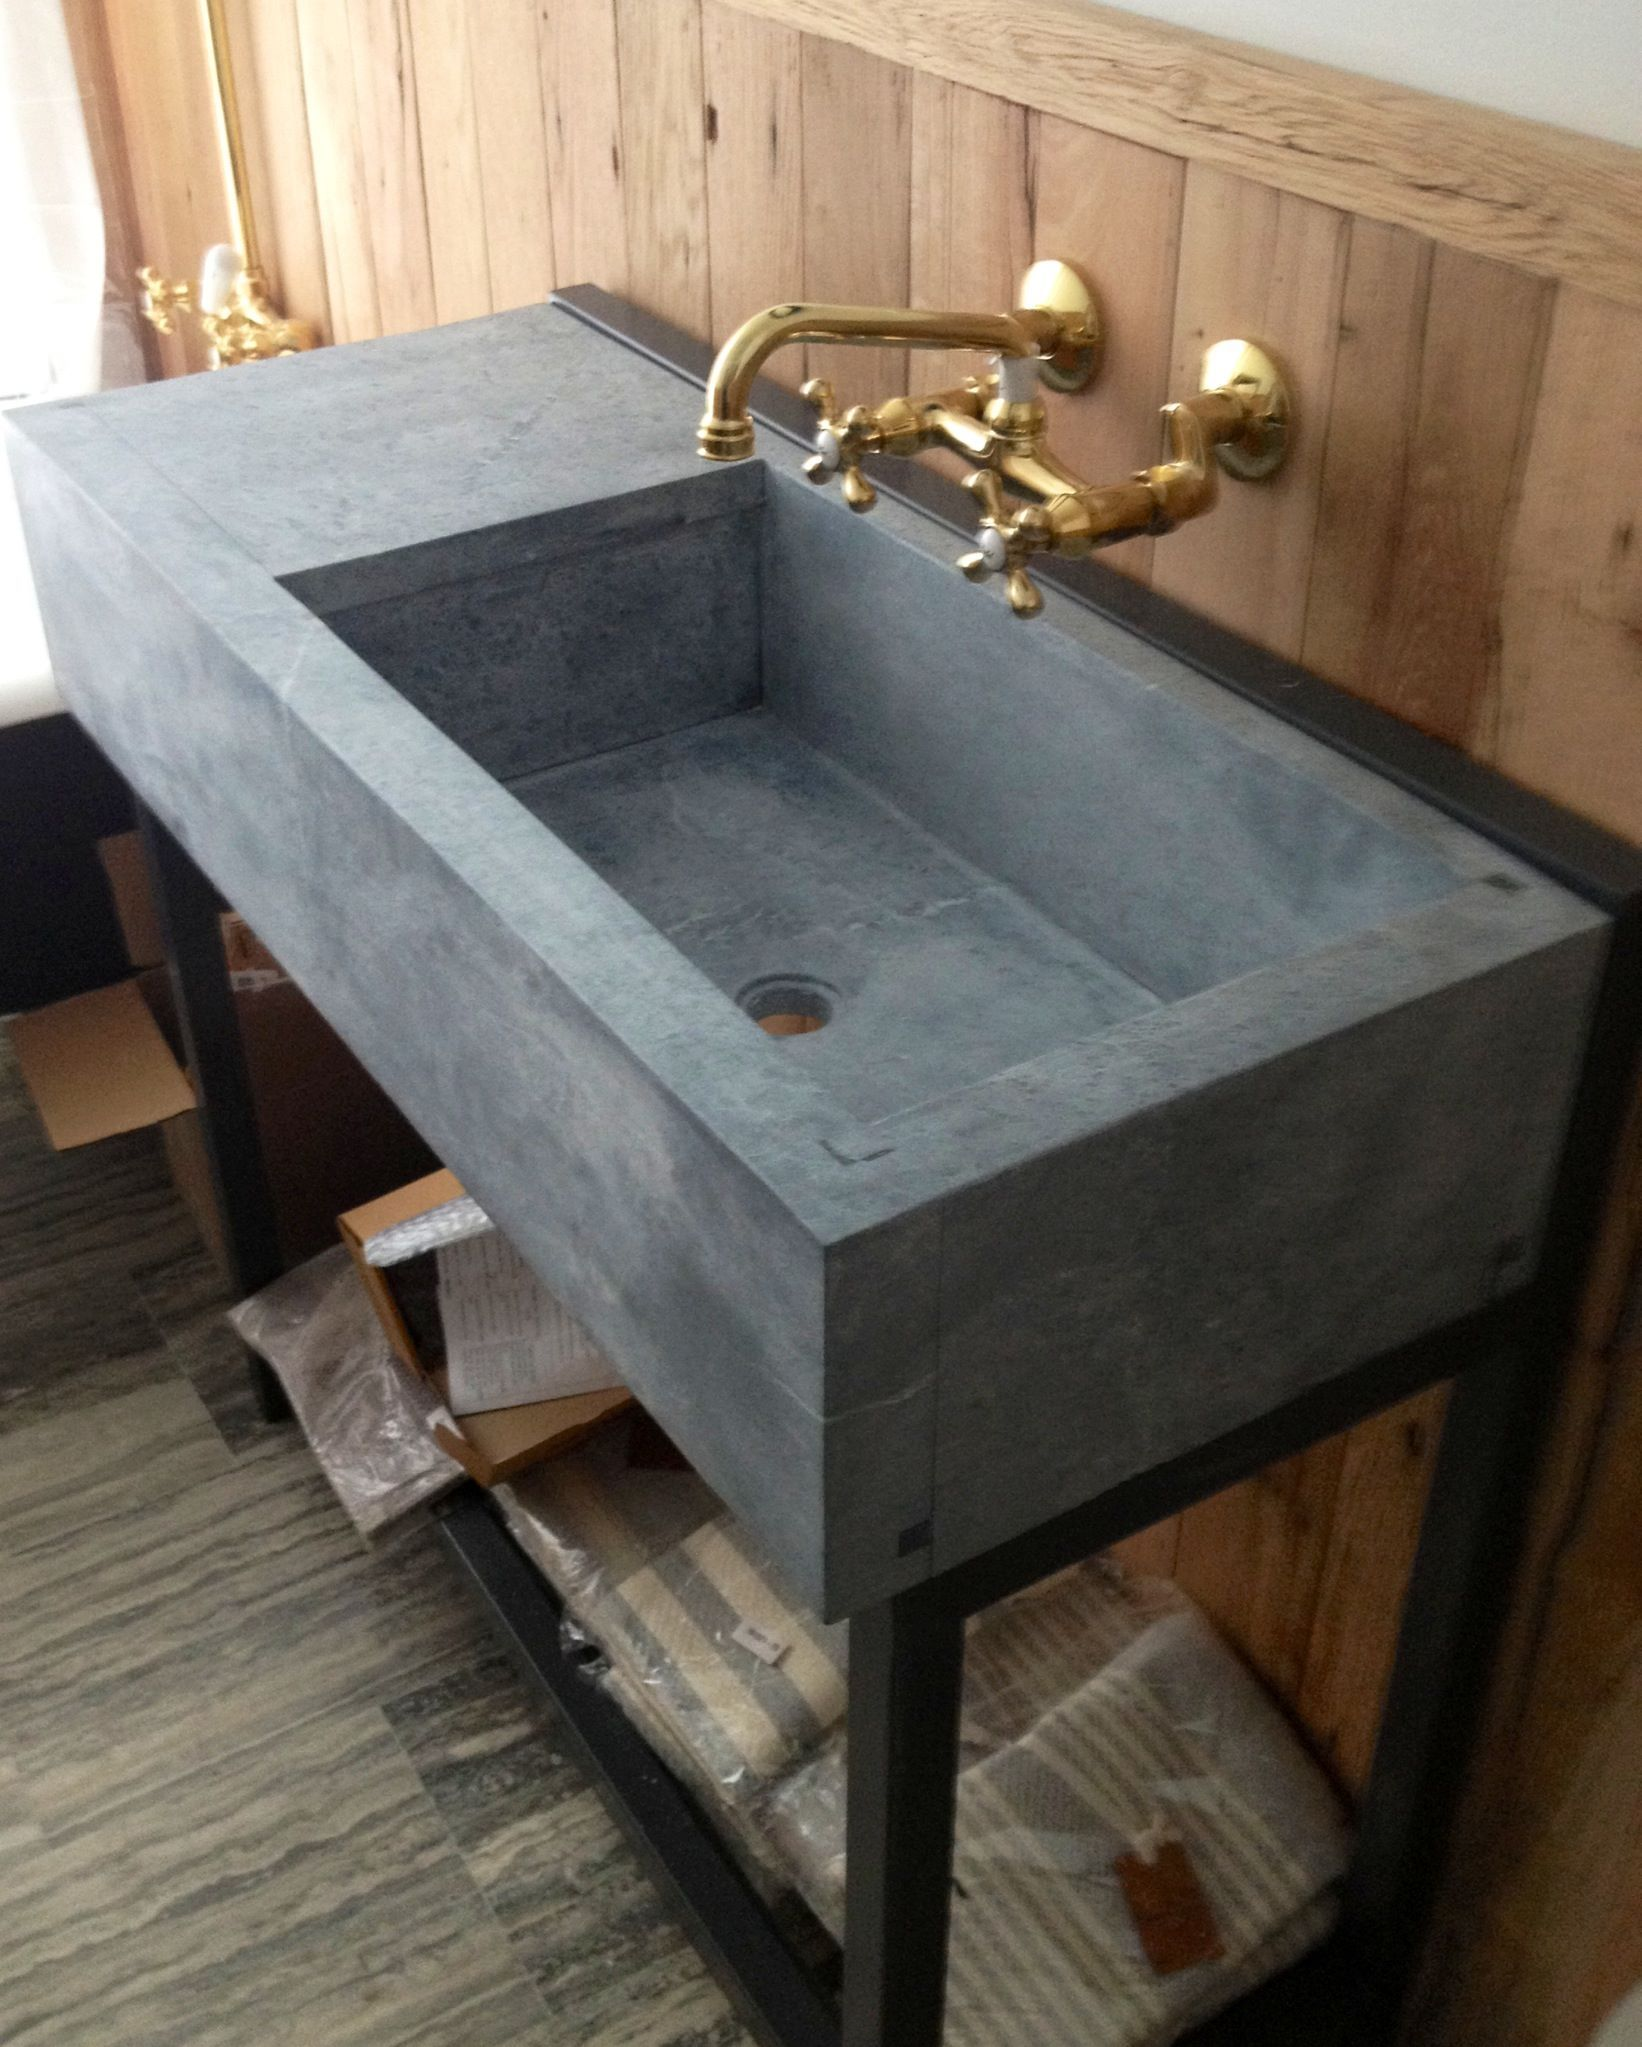 Barn Sinks For Kitchen : soapstone sink for powder room barn style Pinterest